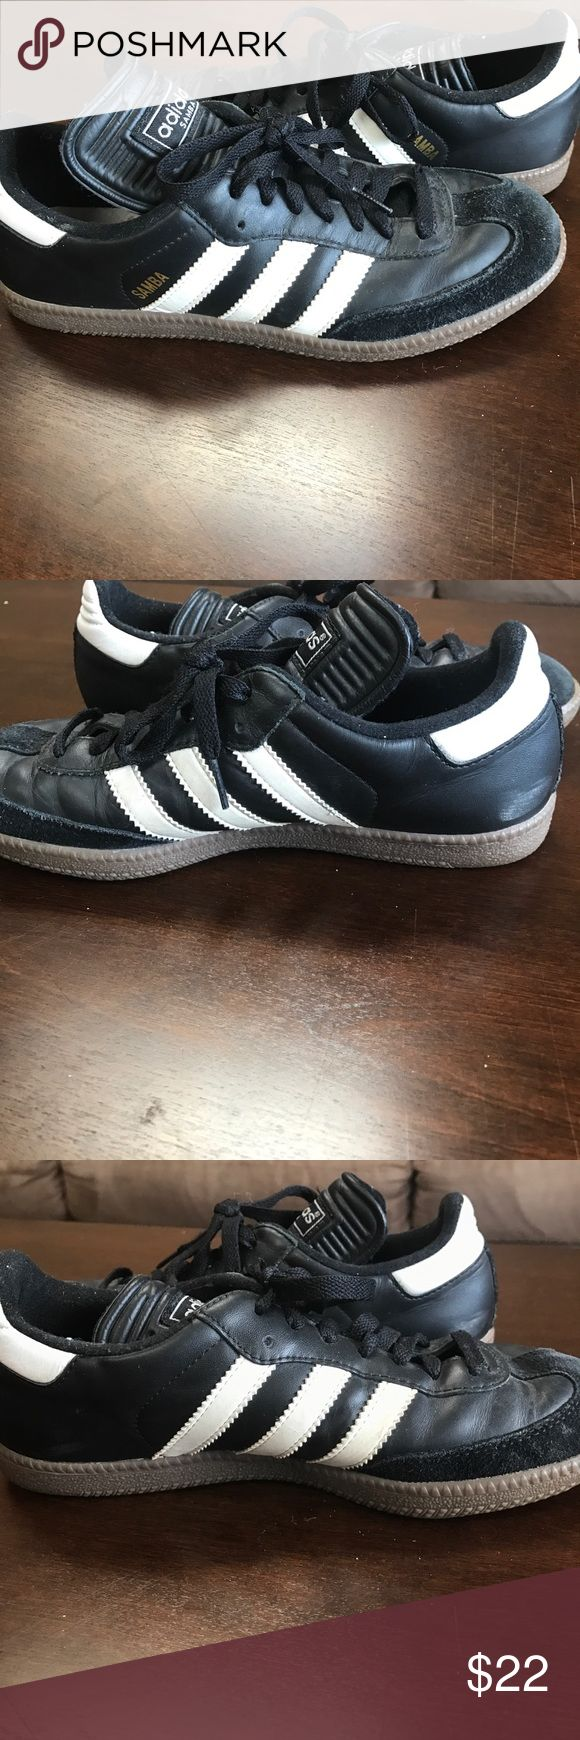 Adidas Samba Signs of use but still in great condition! A few marks shown in the pictures. Suede around toe of shoe. Adidas Shoes Athletic Shoes